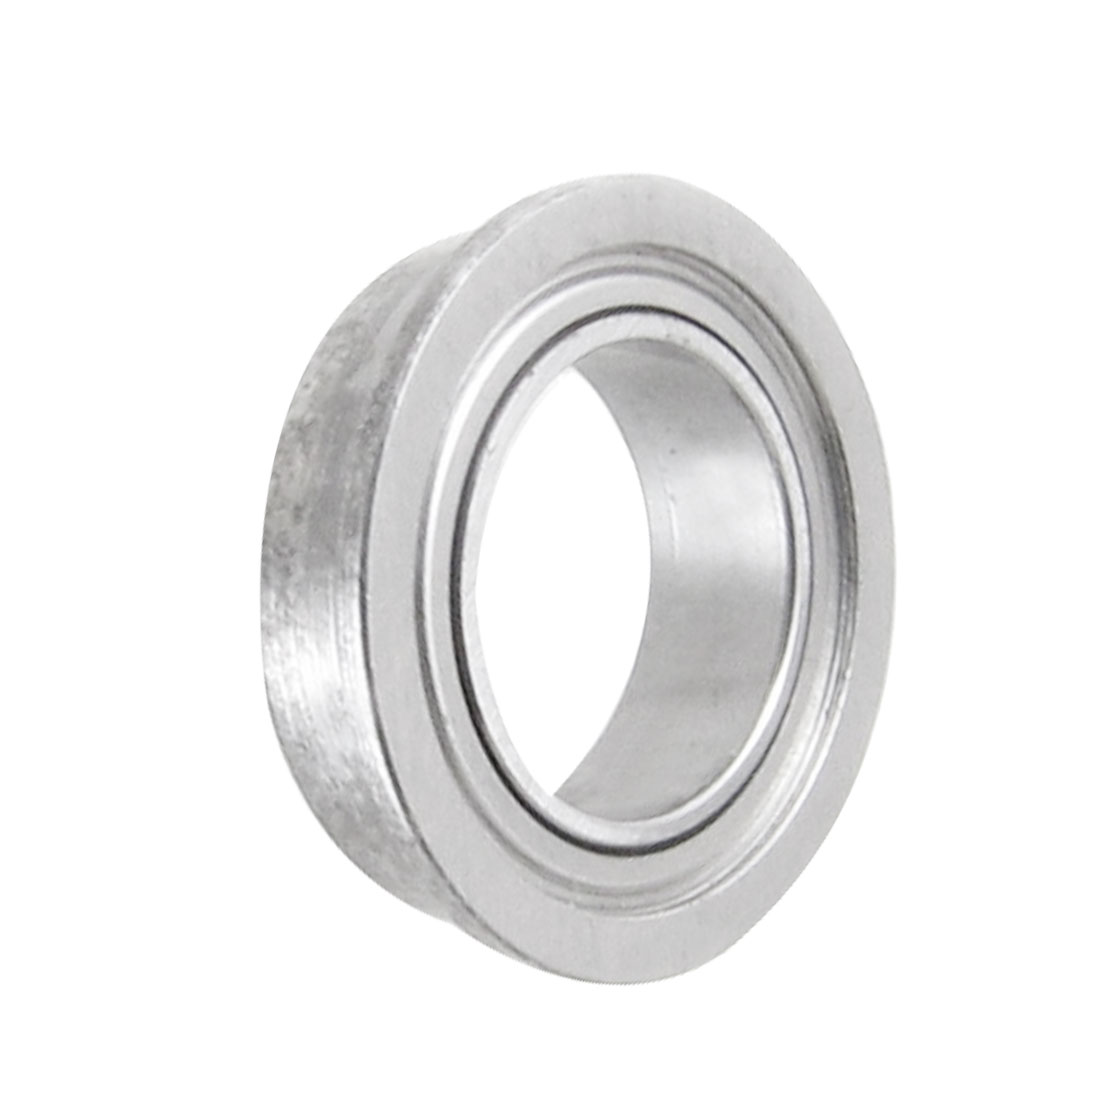 Flanged 8mm x 12mm x 3.5mm Metal Sealed Deep Groove Ball Bearing